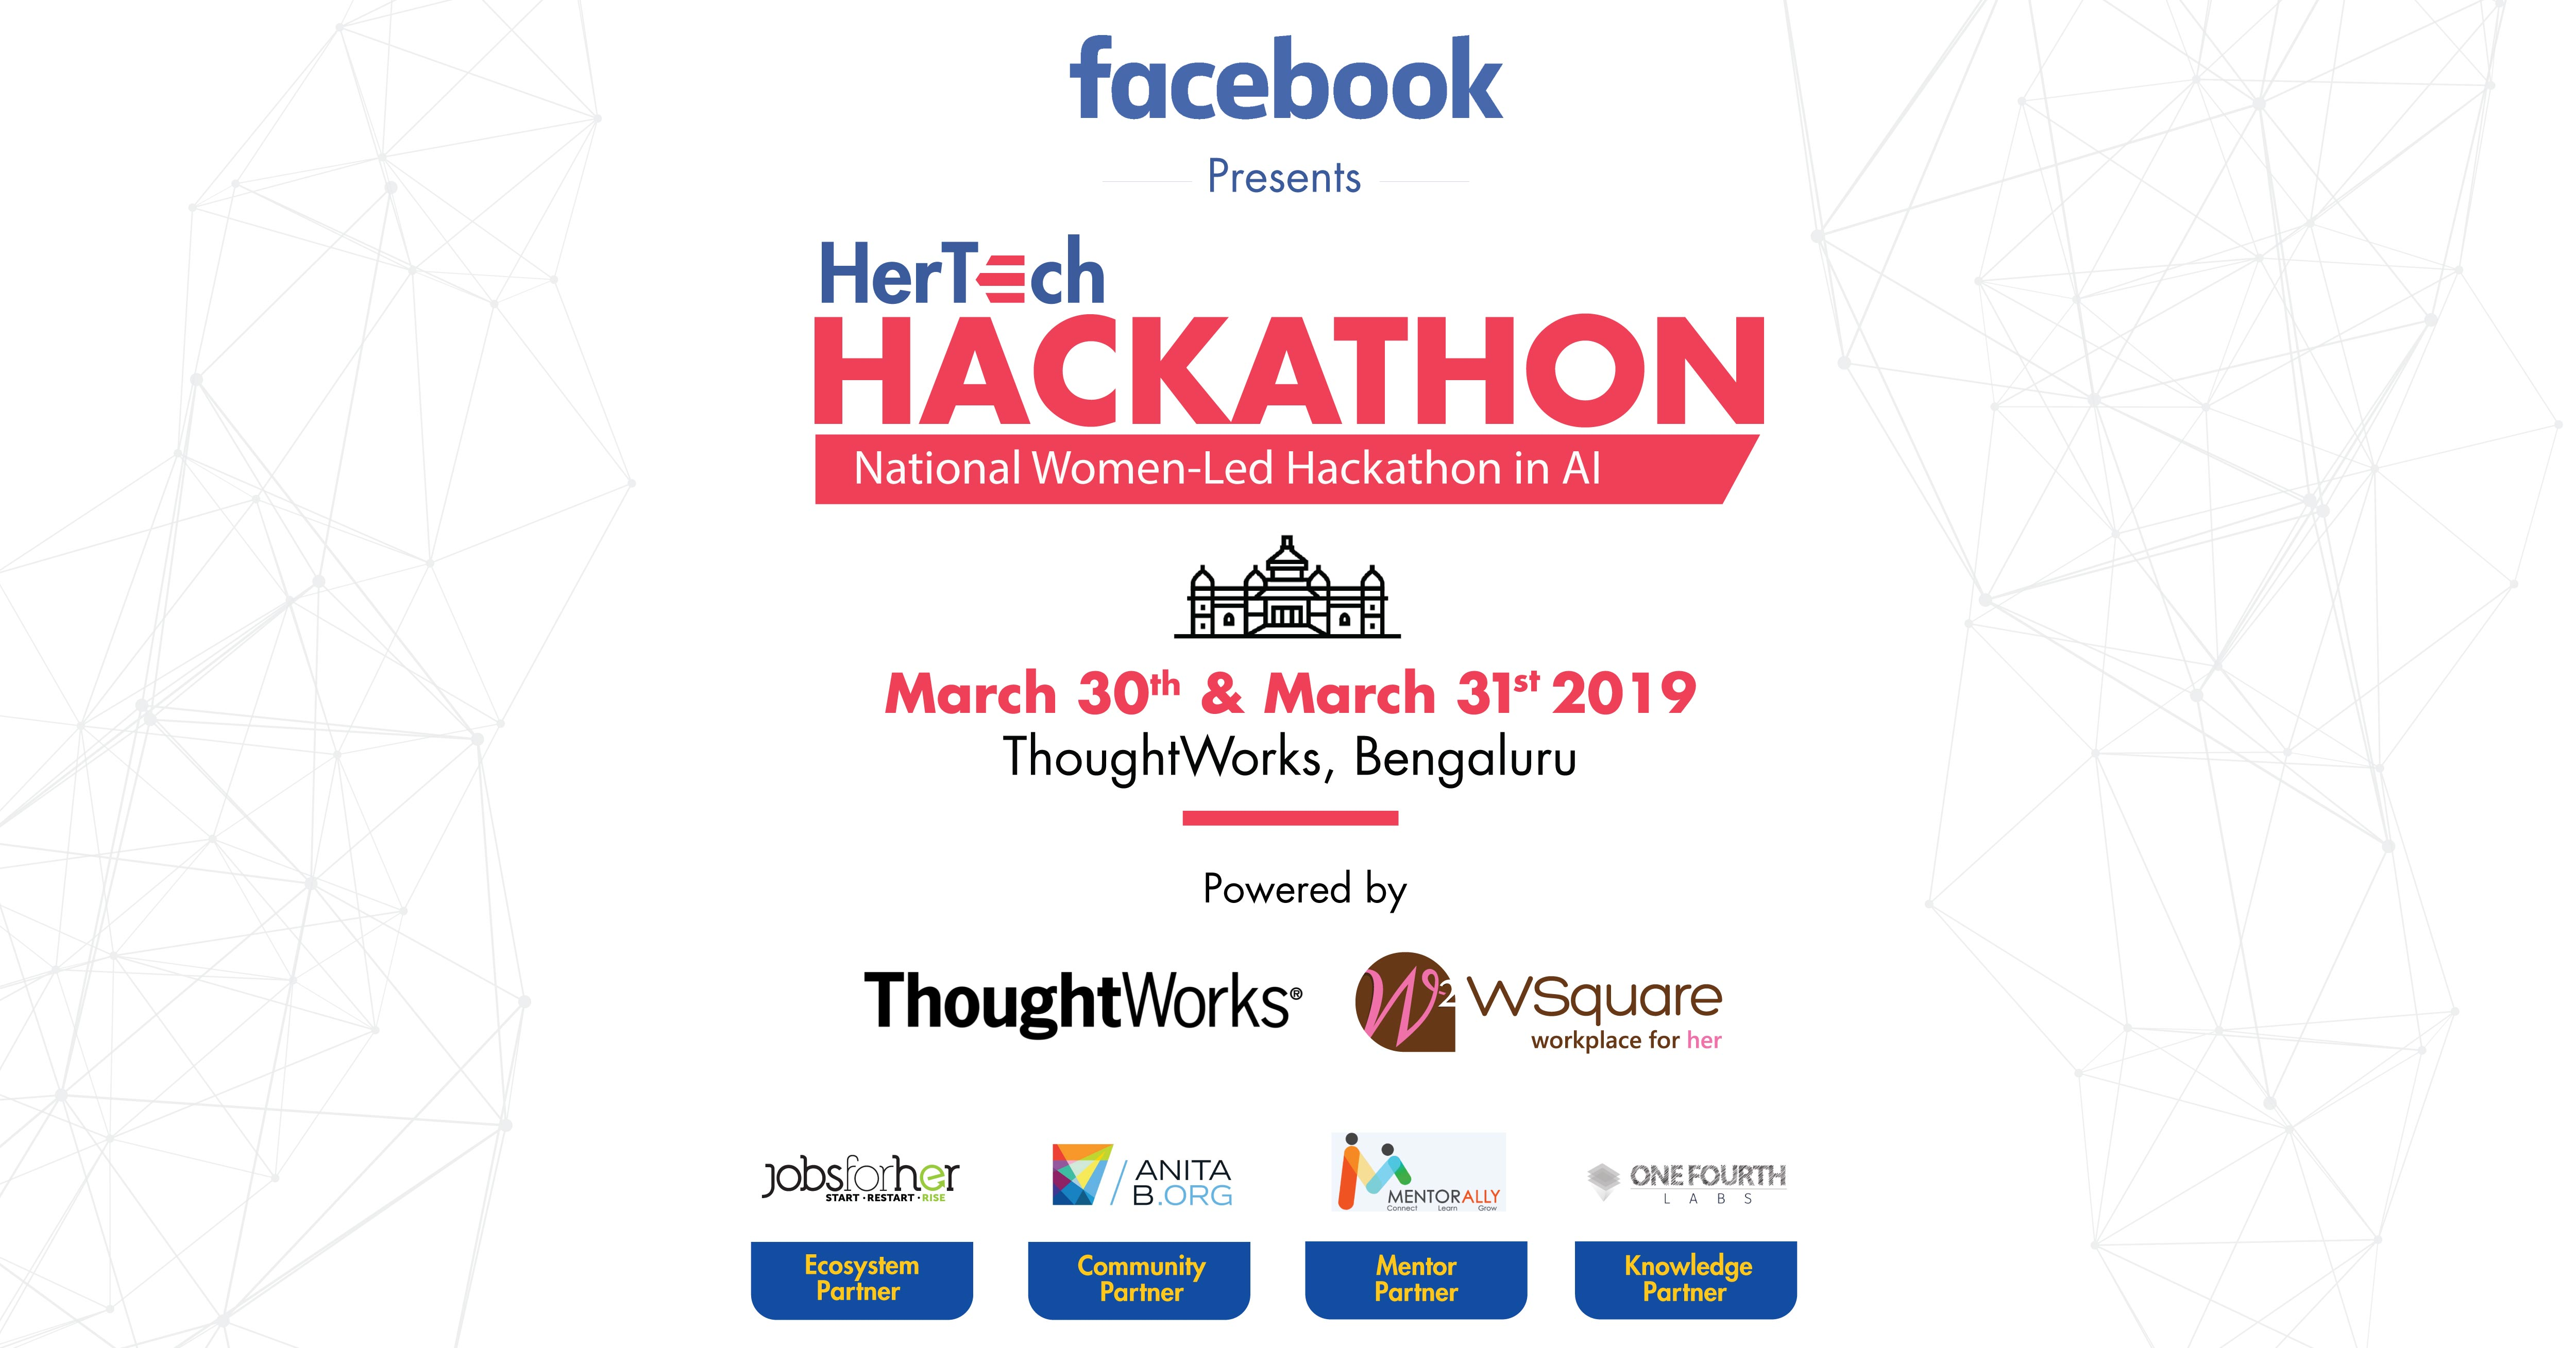 hertech-hackathon-national-woman-led-hackathon-in-ai